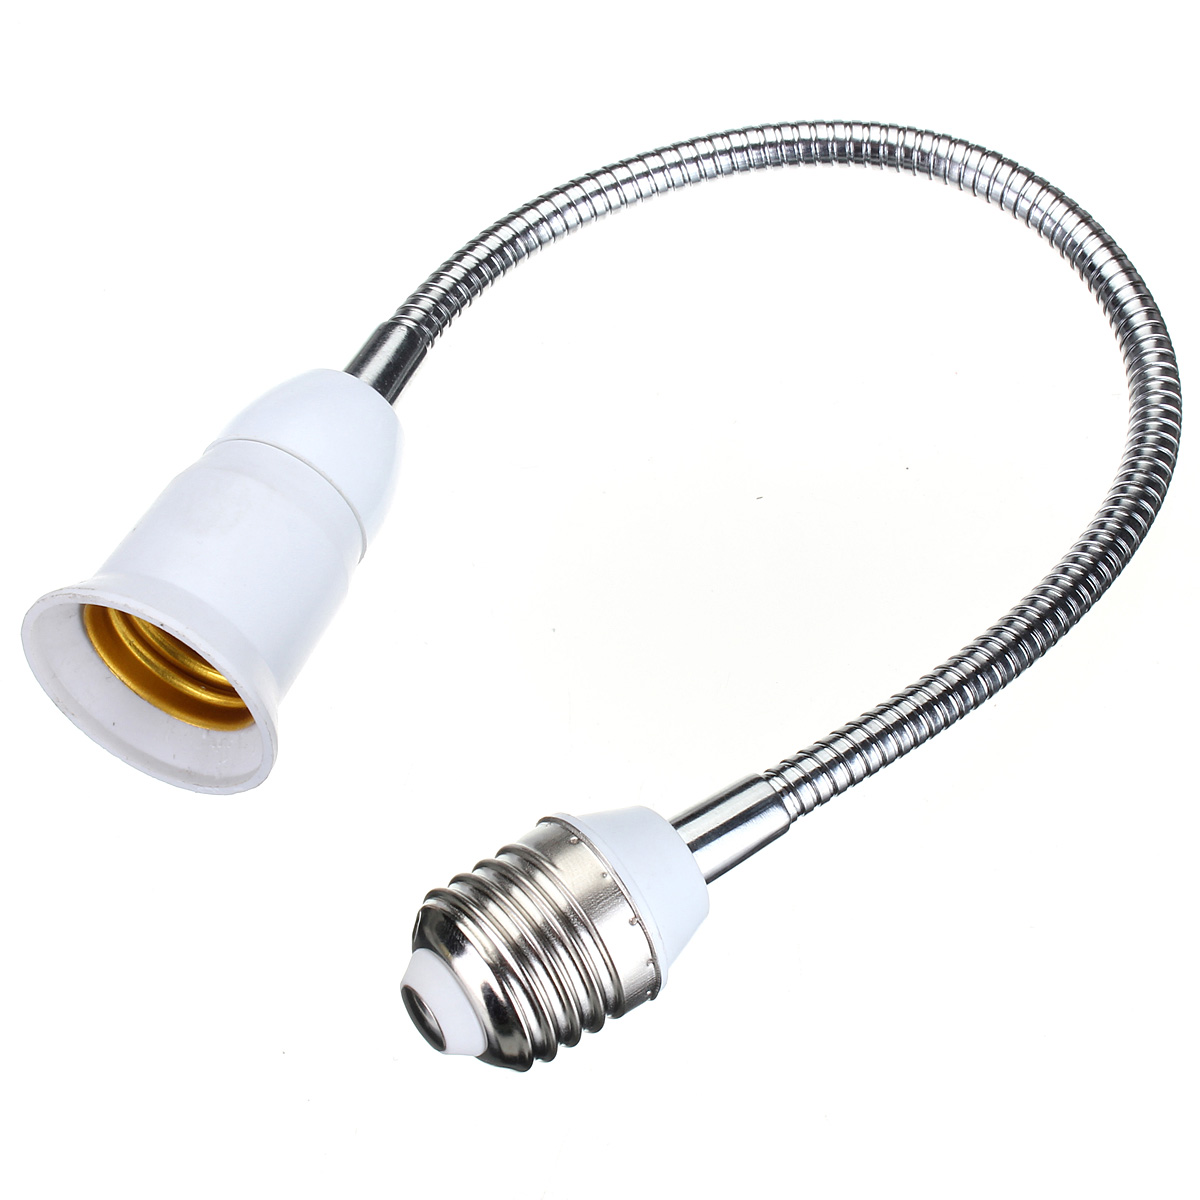 E27 Light Bulb Lamp Holder Screw Socket Pro Flexible